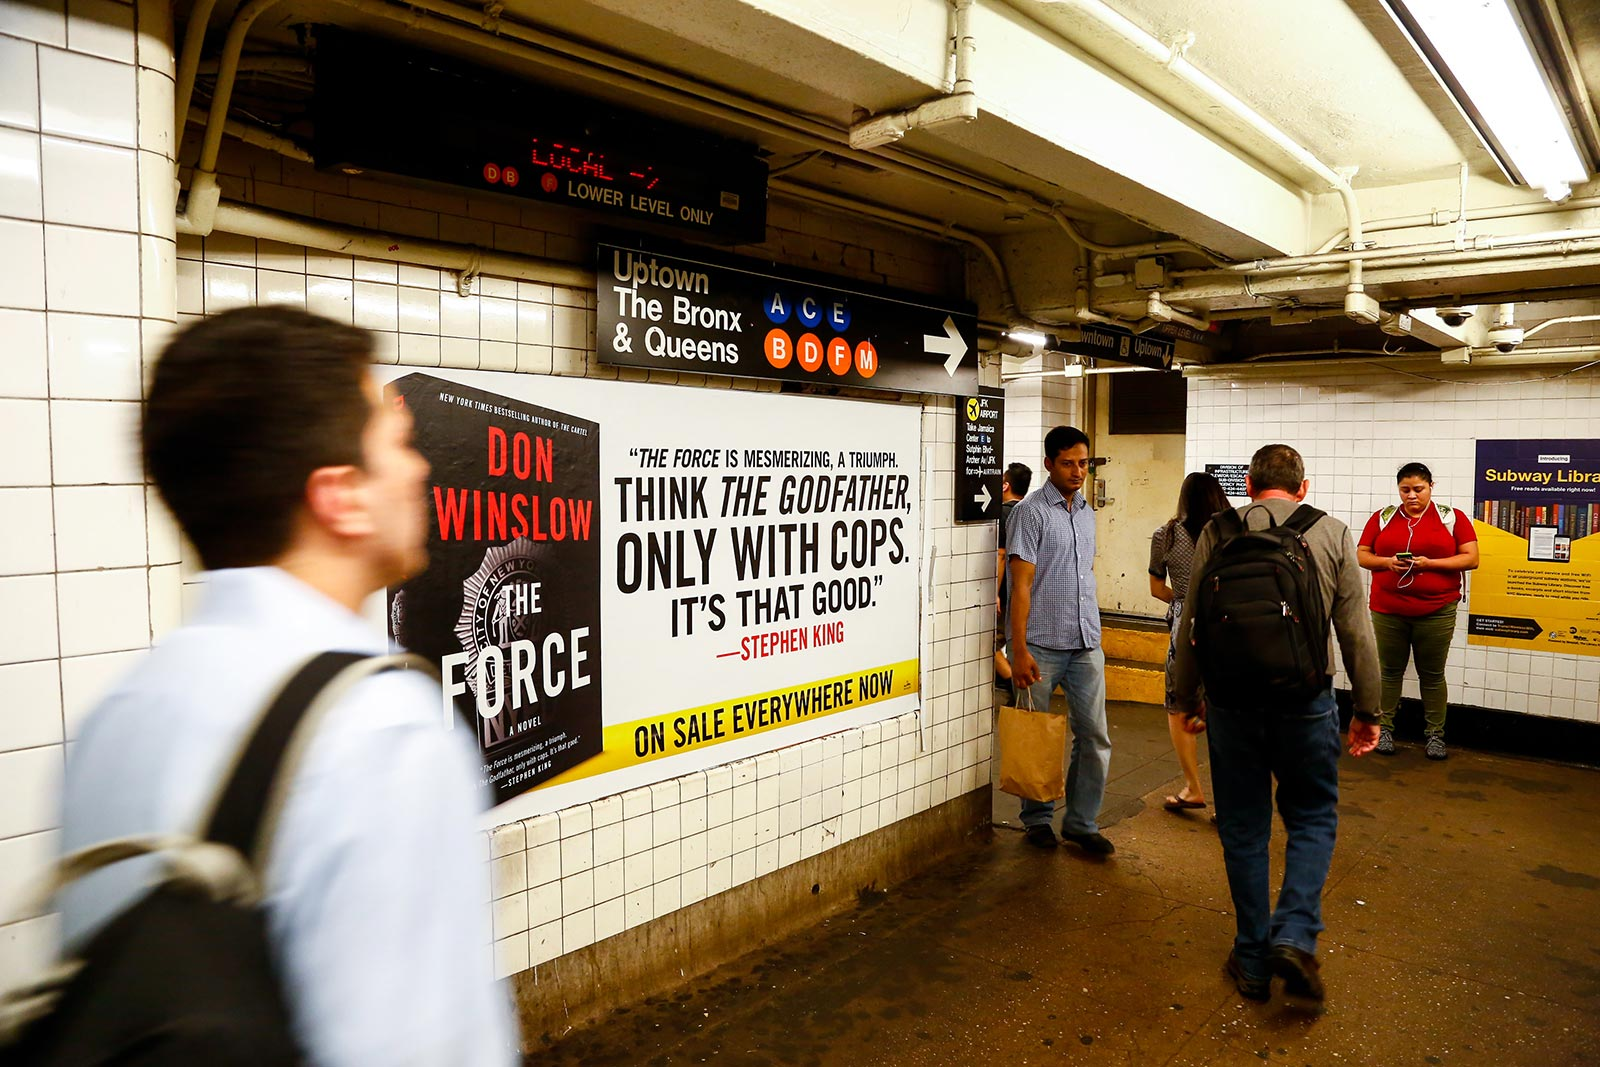 Don Winslow - The Force - W4th Station - Poster in Subway Entrance